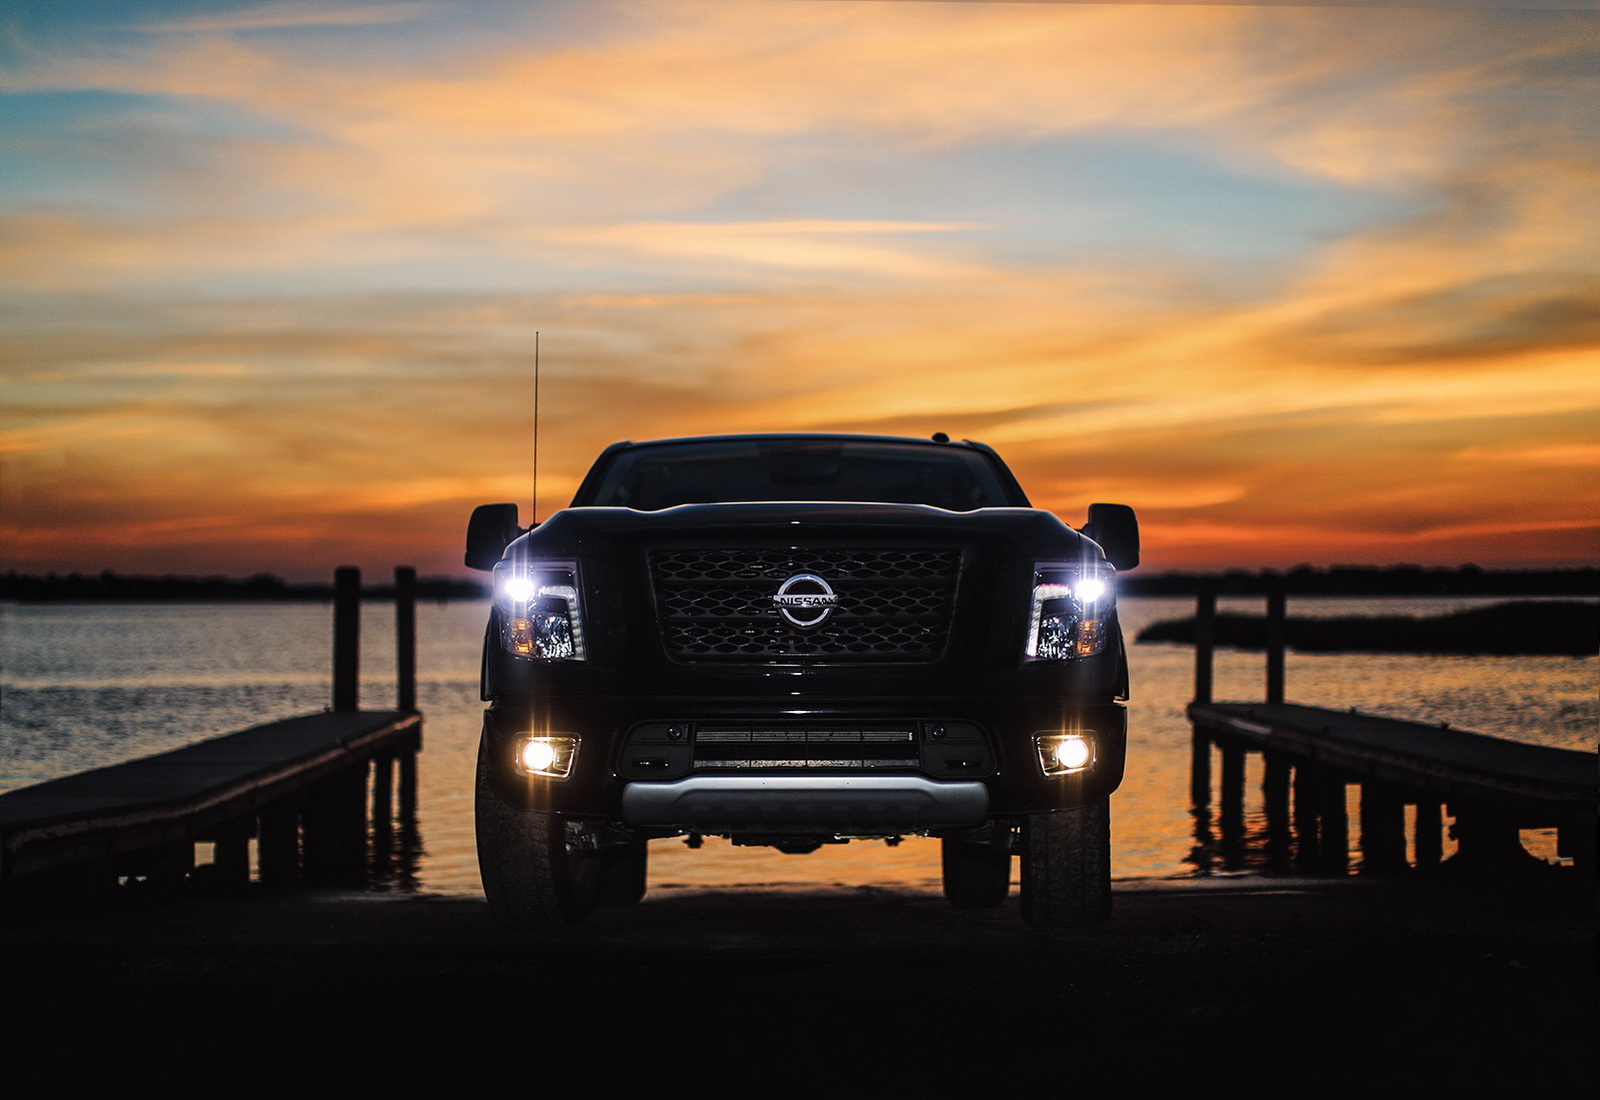 2018 Nissan Titan Priced From $31,075, Titan XD From ...